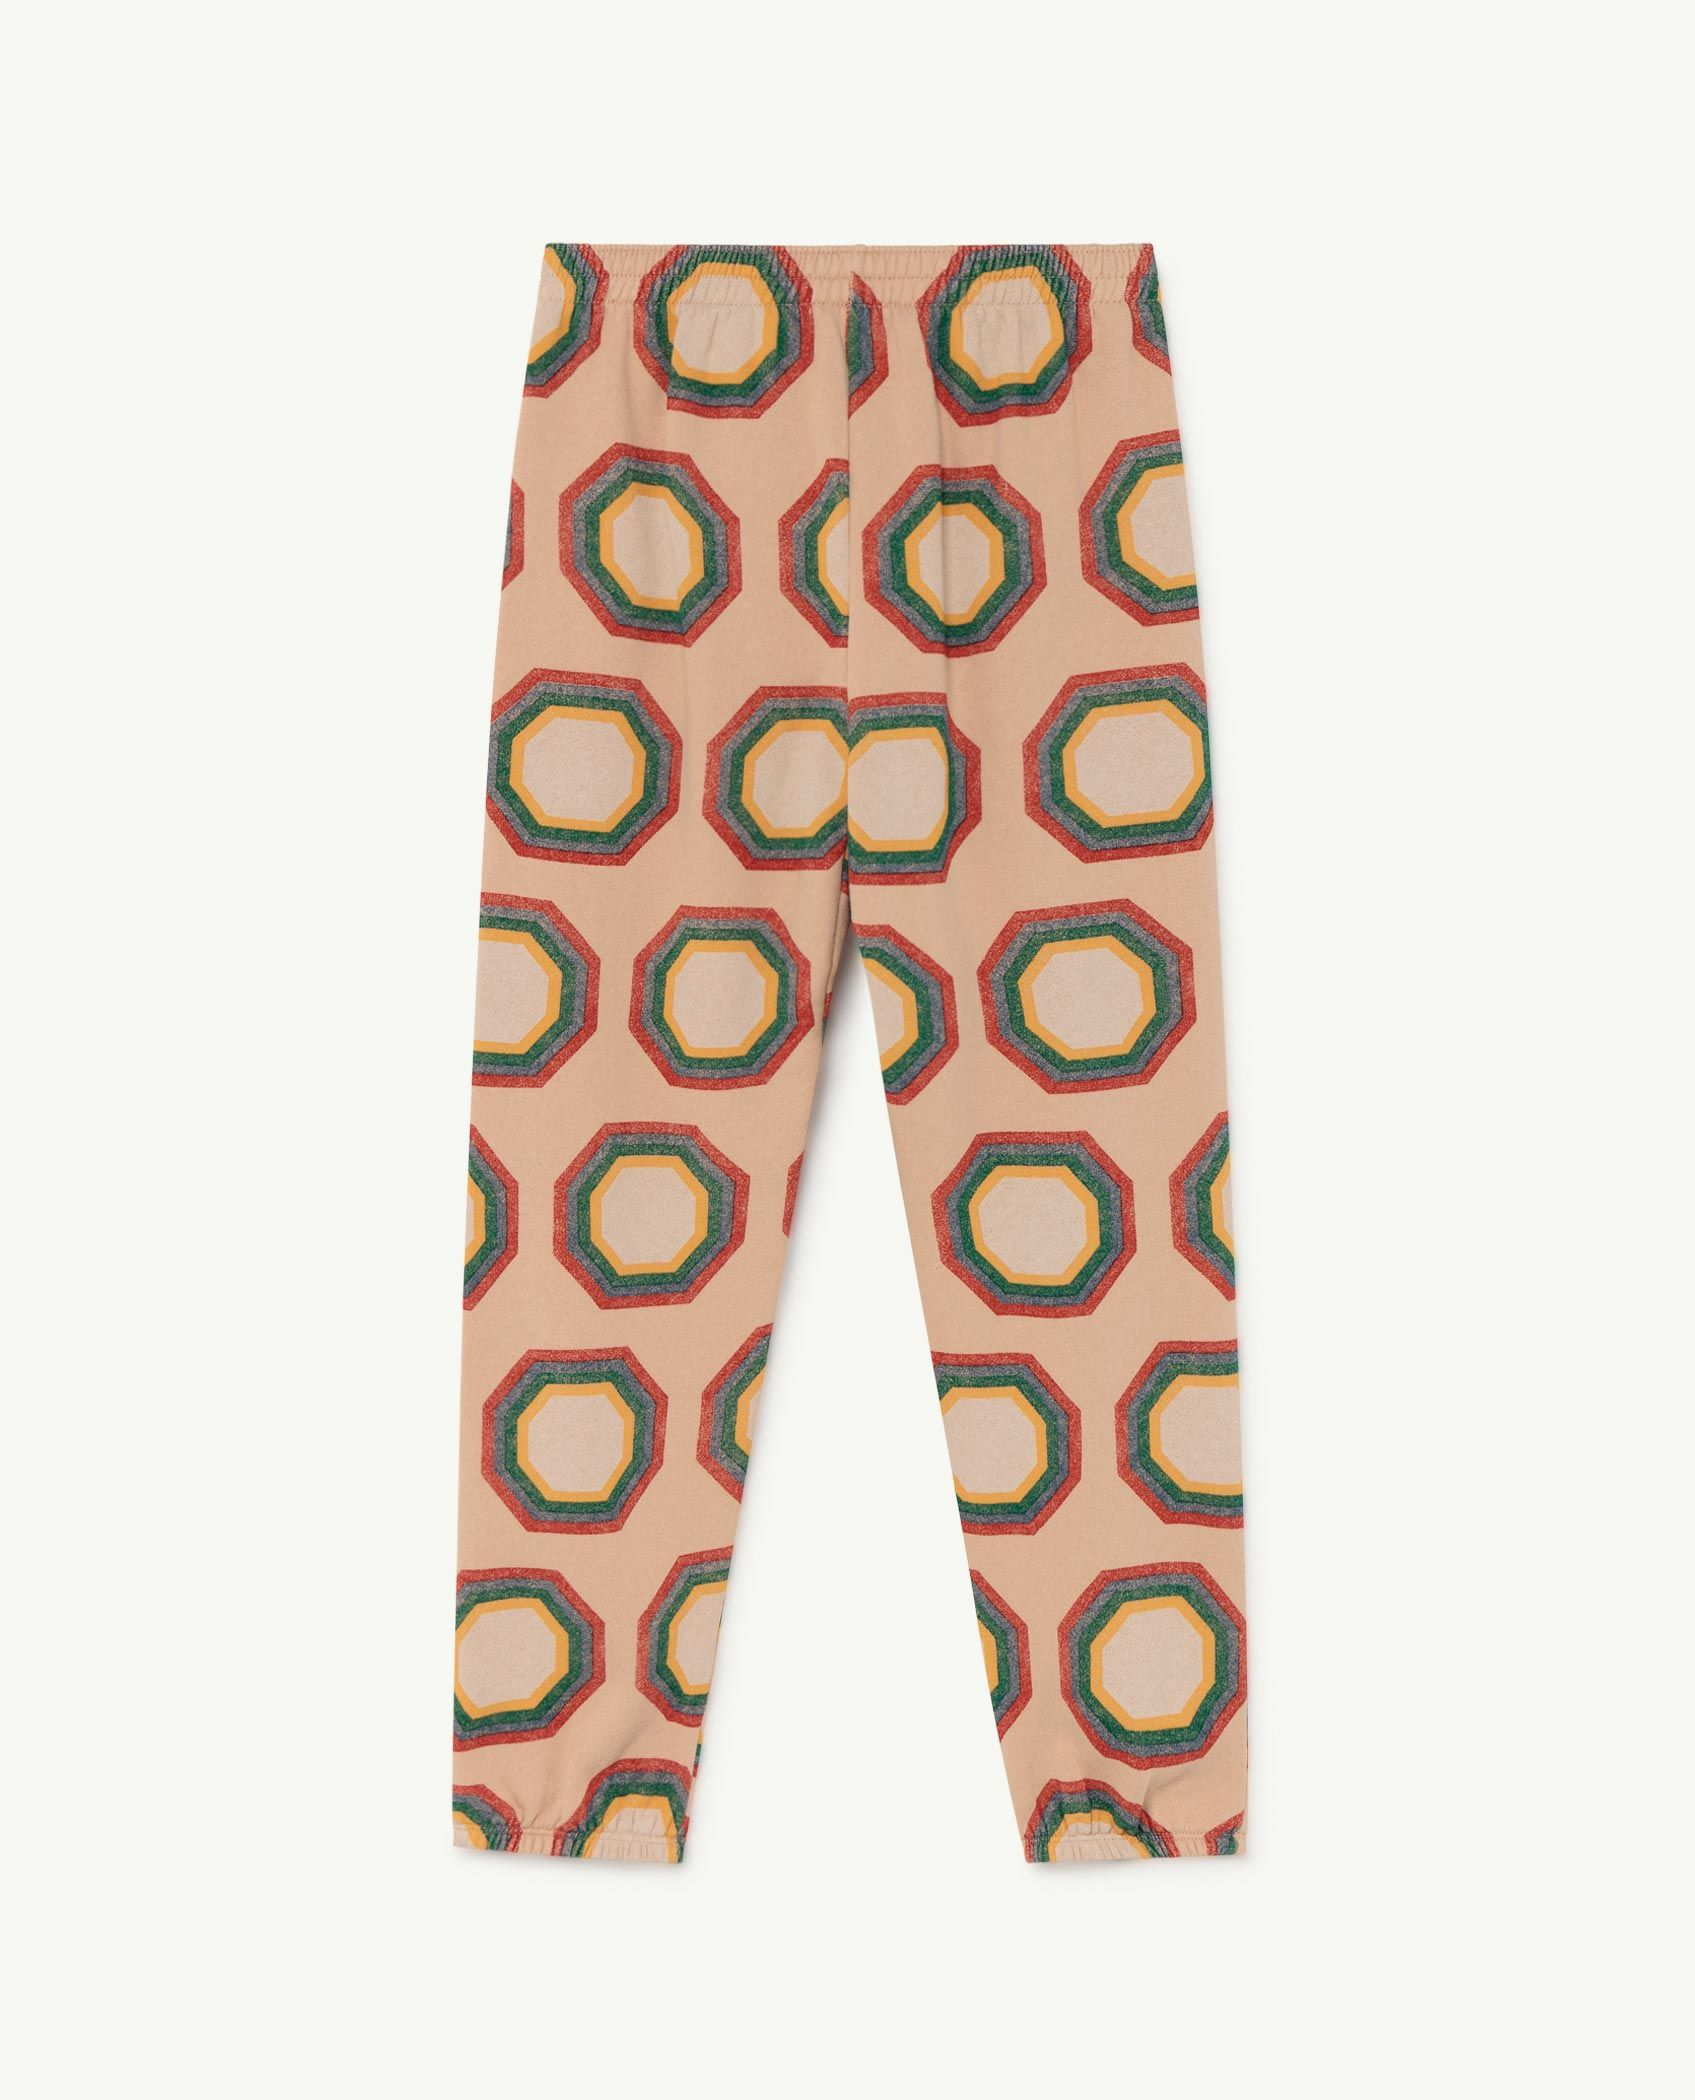 Soft Pink Octagon Dromedary Trousers img-2